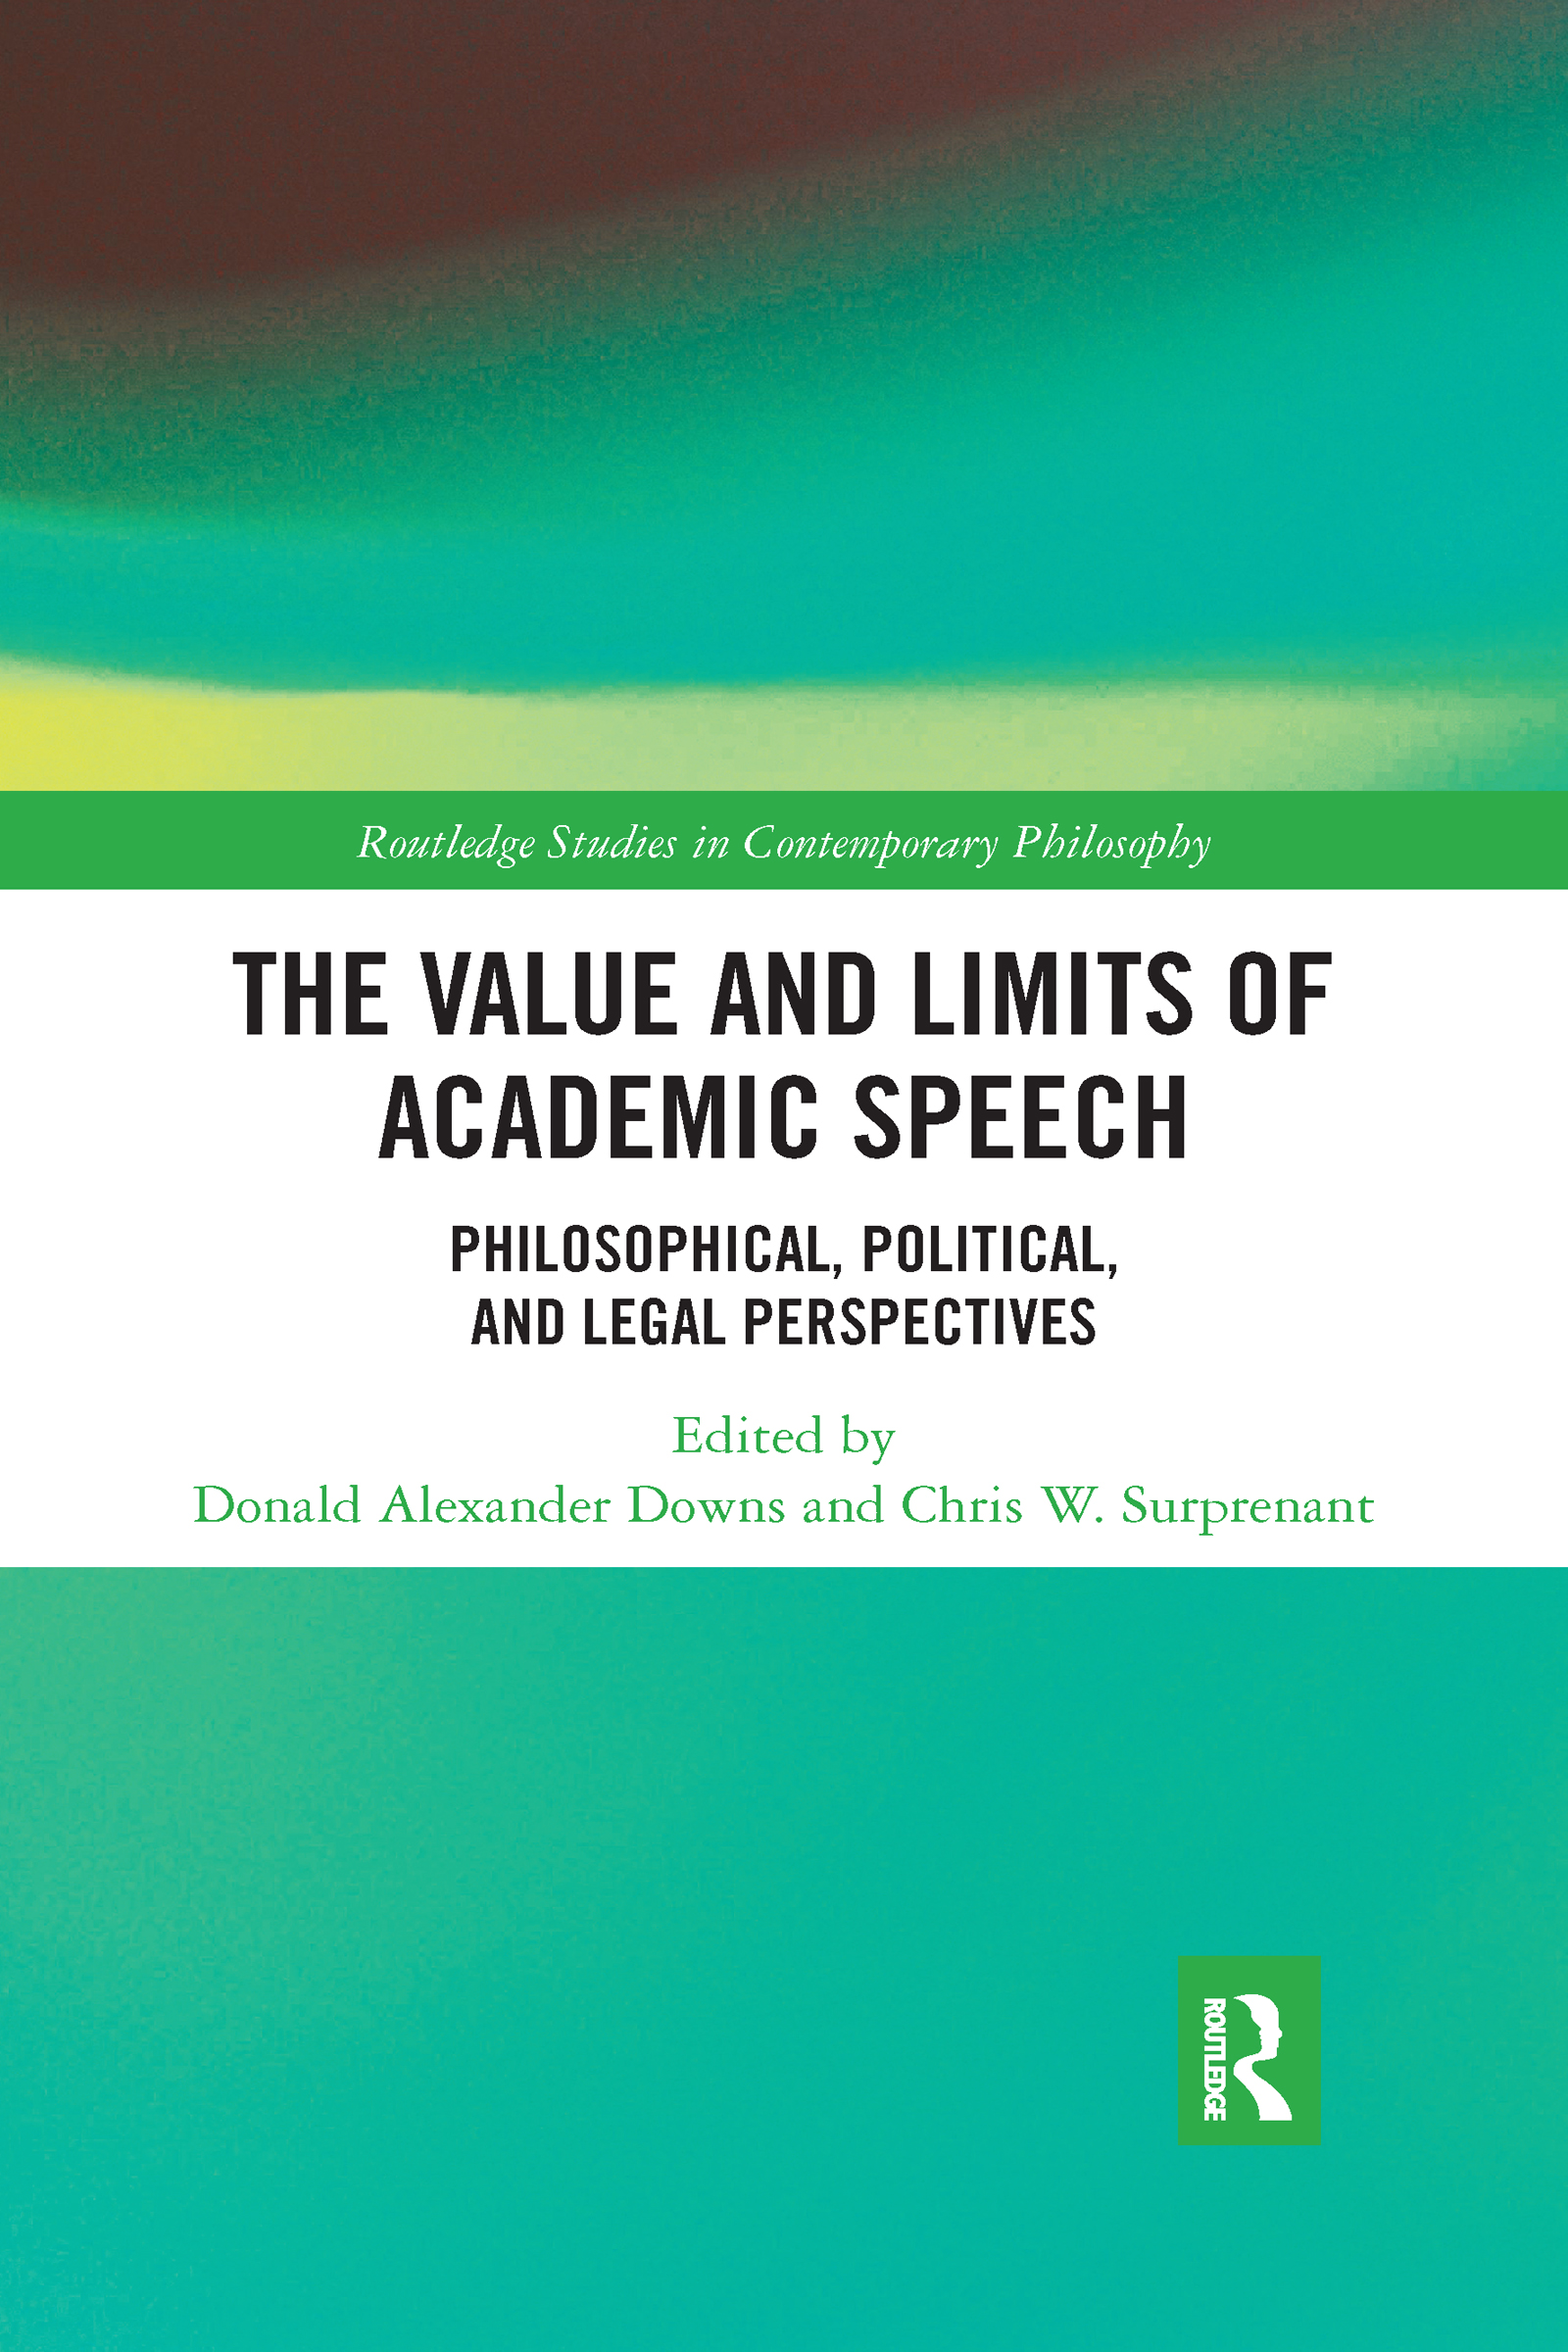 The Value and Limits of Academic Speech